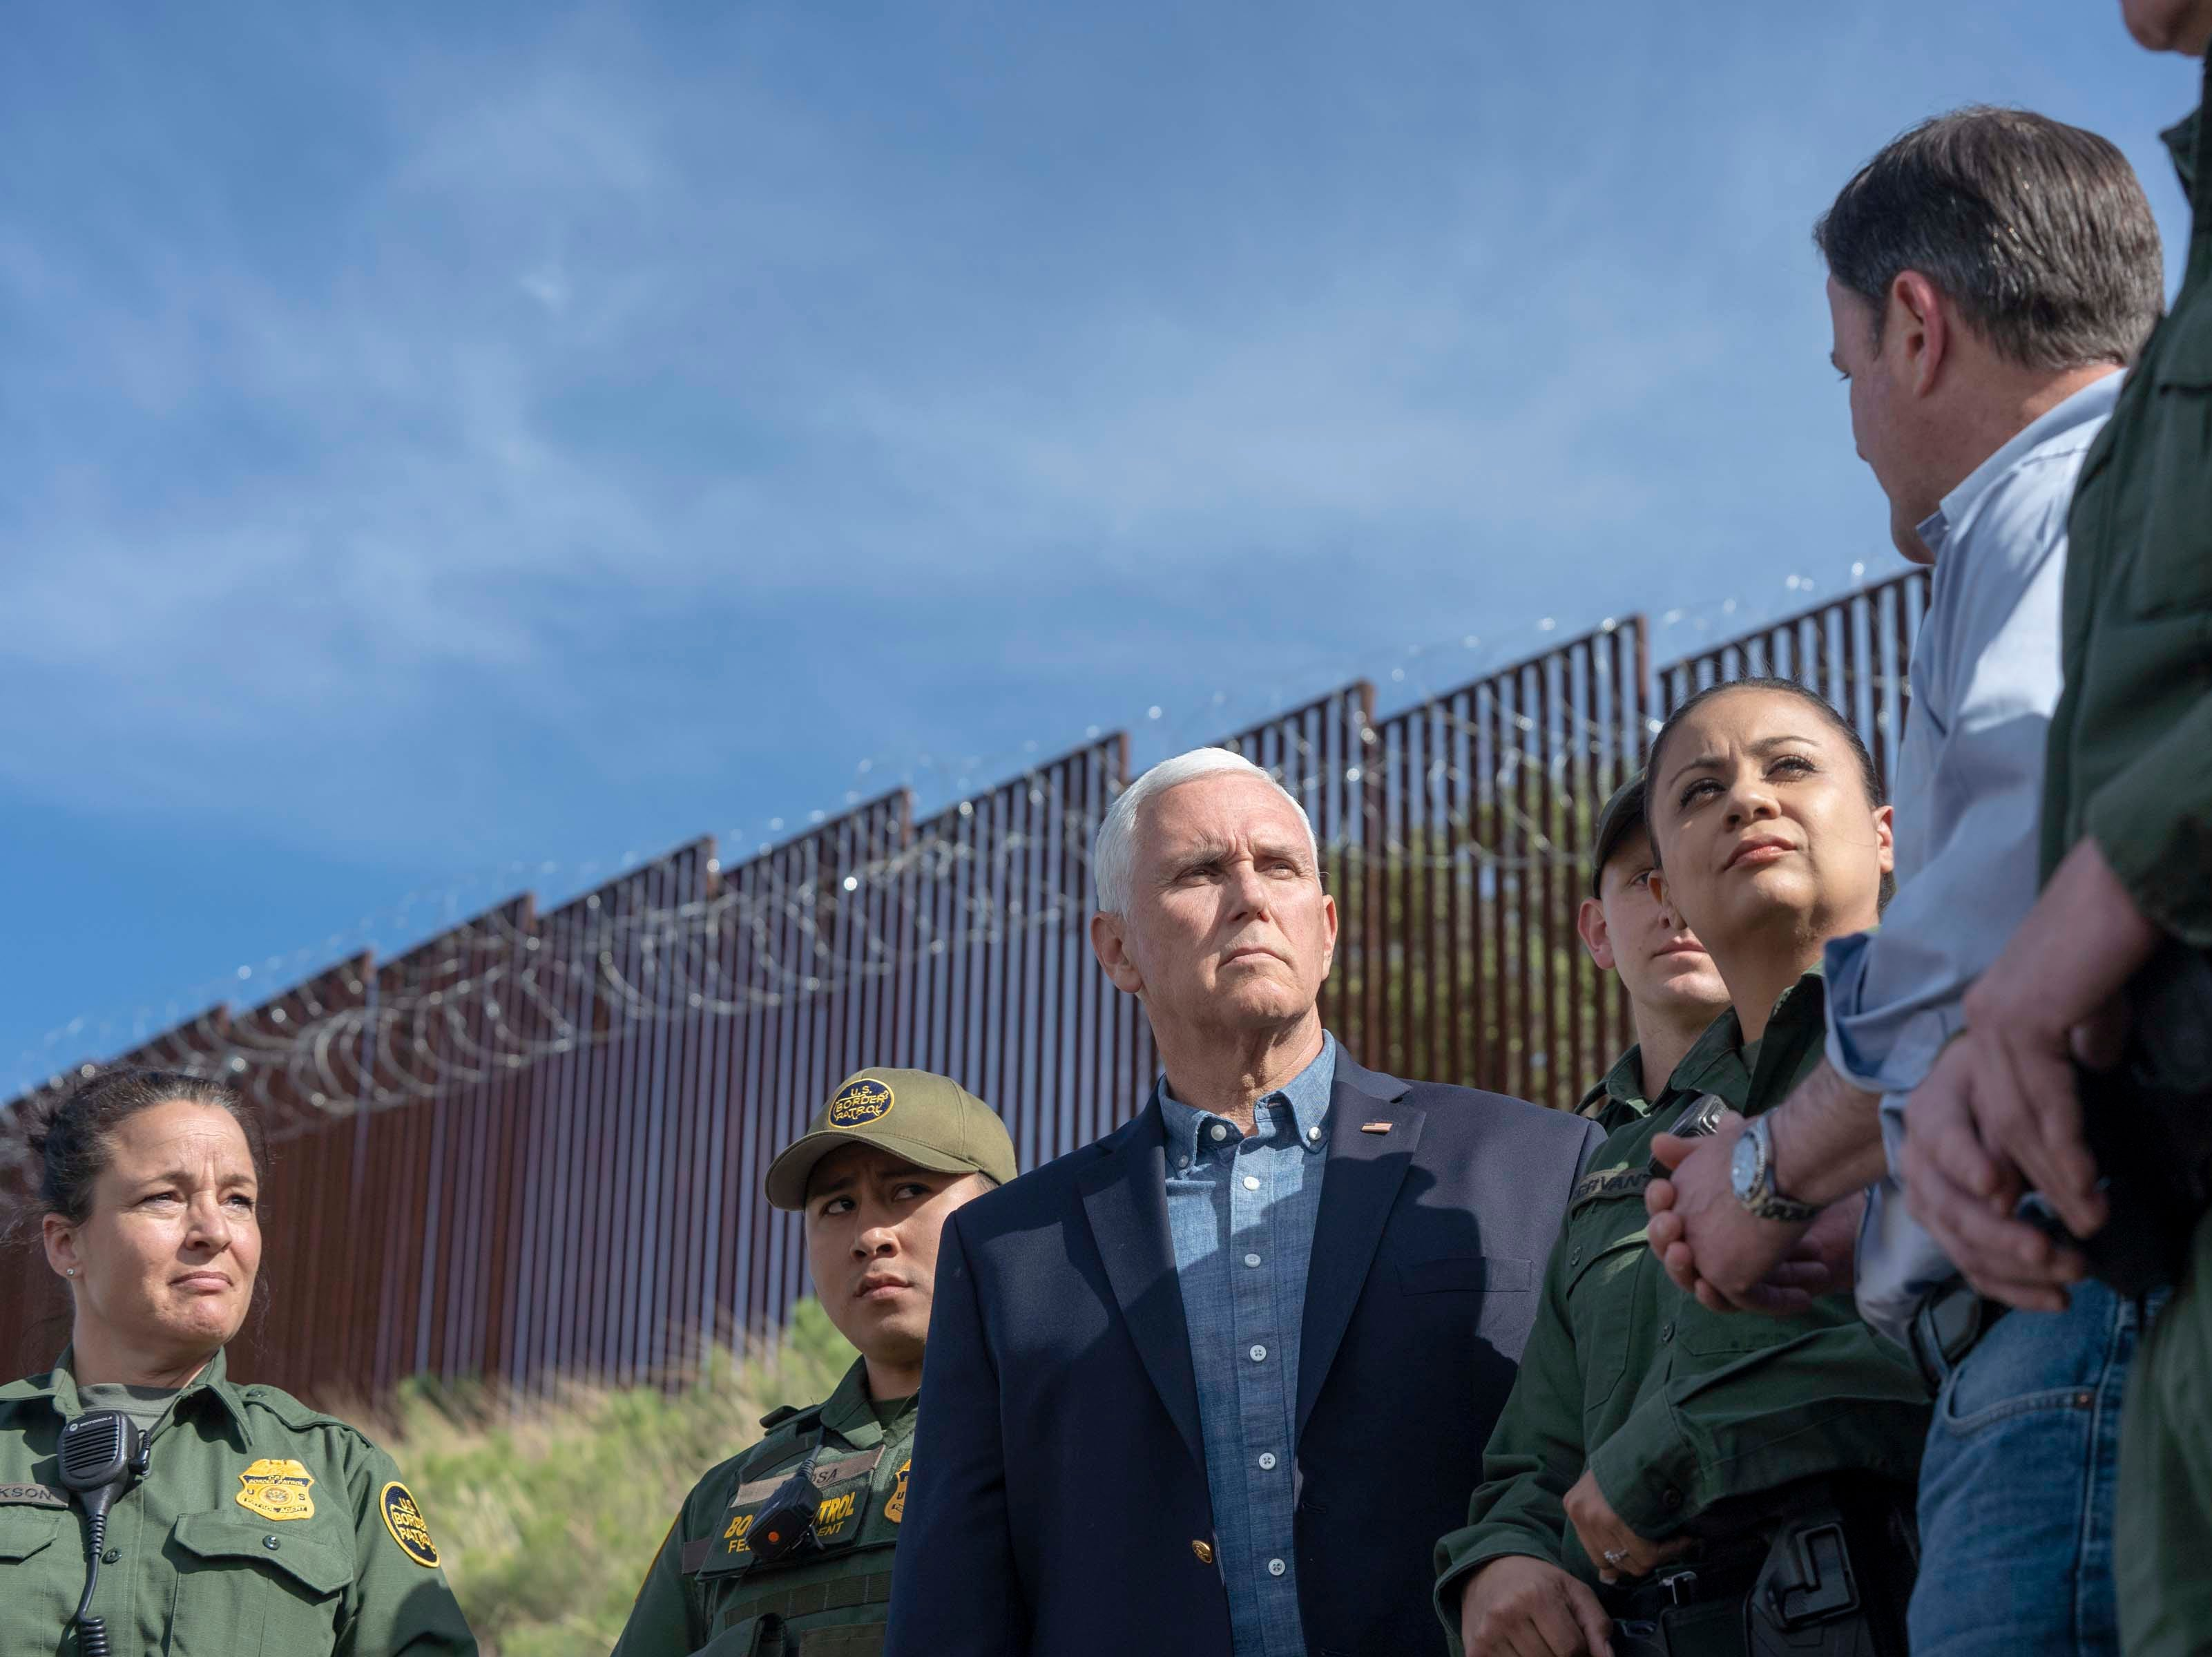 Vice President Mike Pence and Arizona Gov. Doug Ducey, along with Border Patrol agents, tour sections of the border fence in Nogales, Ariz.